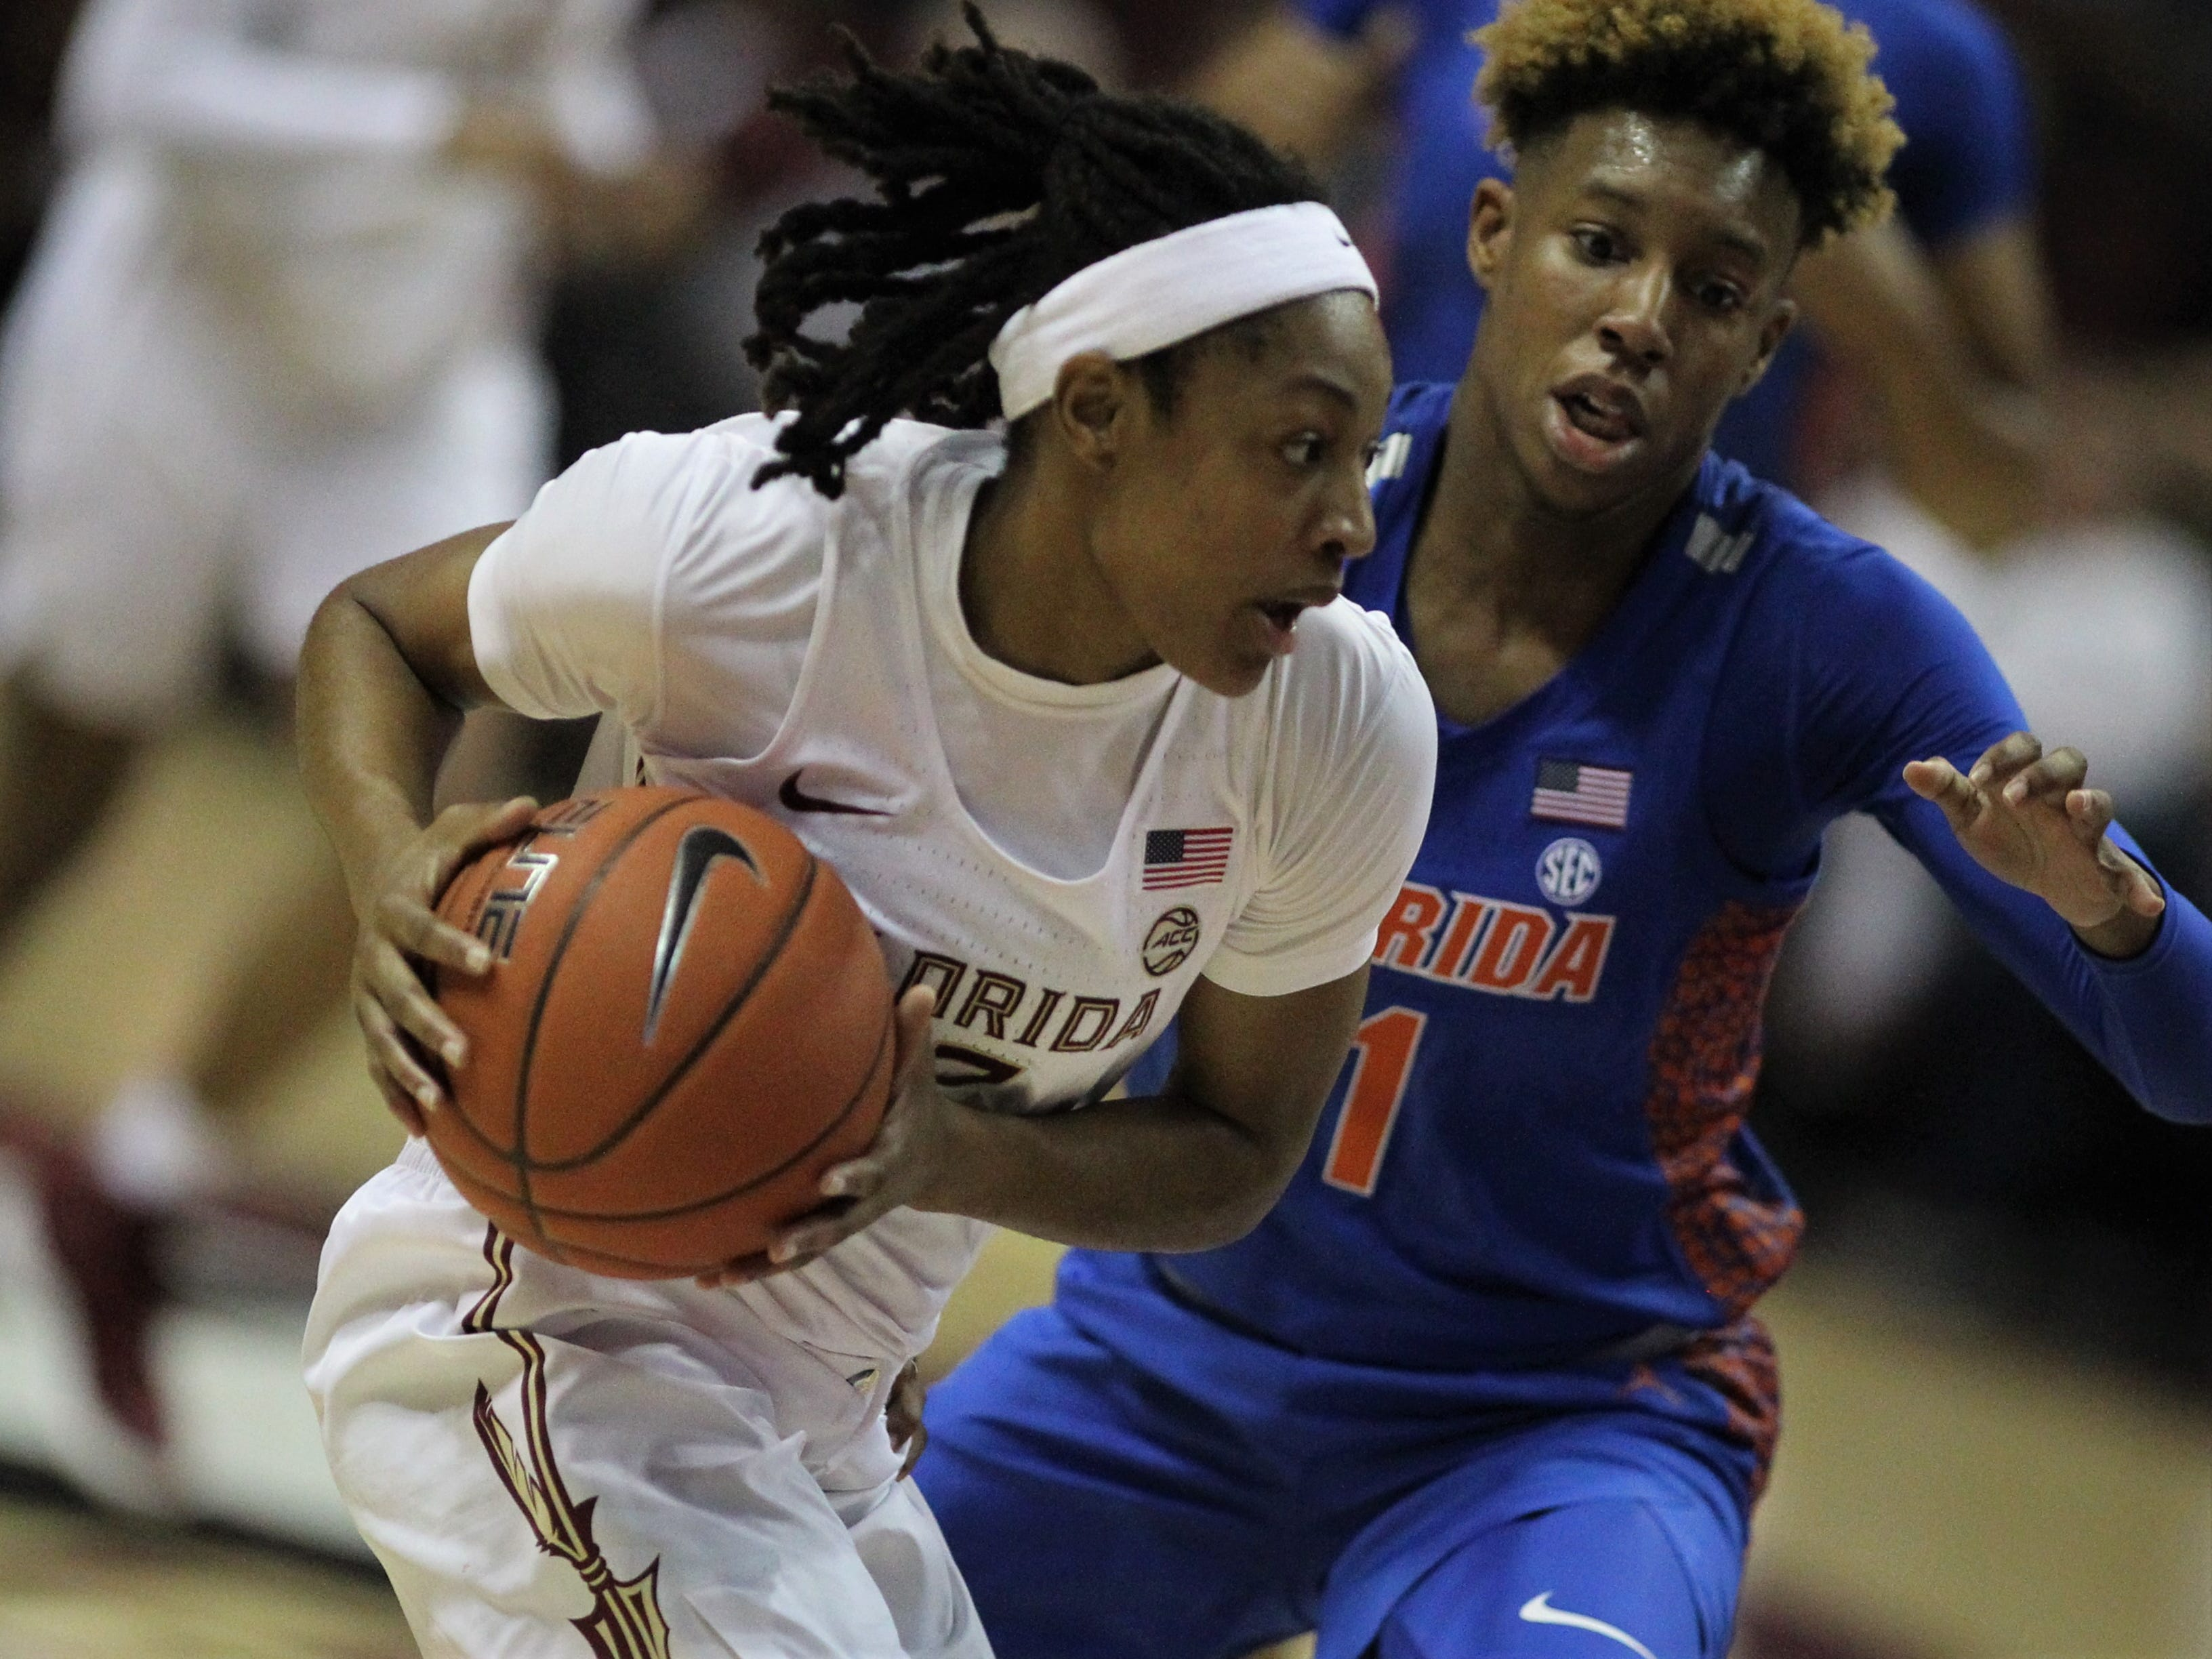 Florida State's Nicki Ekhomu drives past Florida's Kiara Smith during the first half of the Seminoles' game against the Gators at the Tucker Civic Center on Nov. 11, 2018.